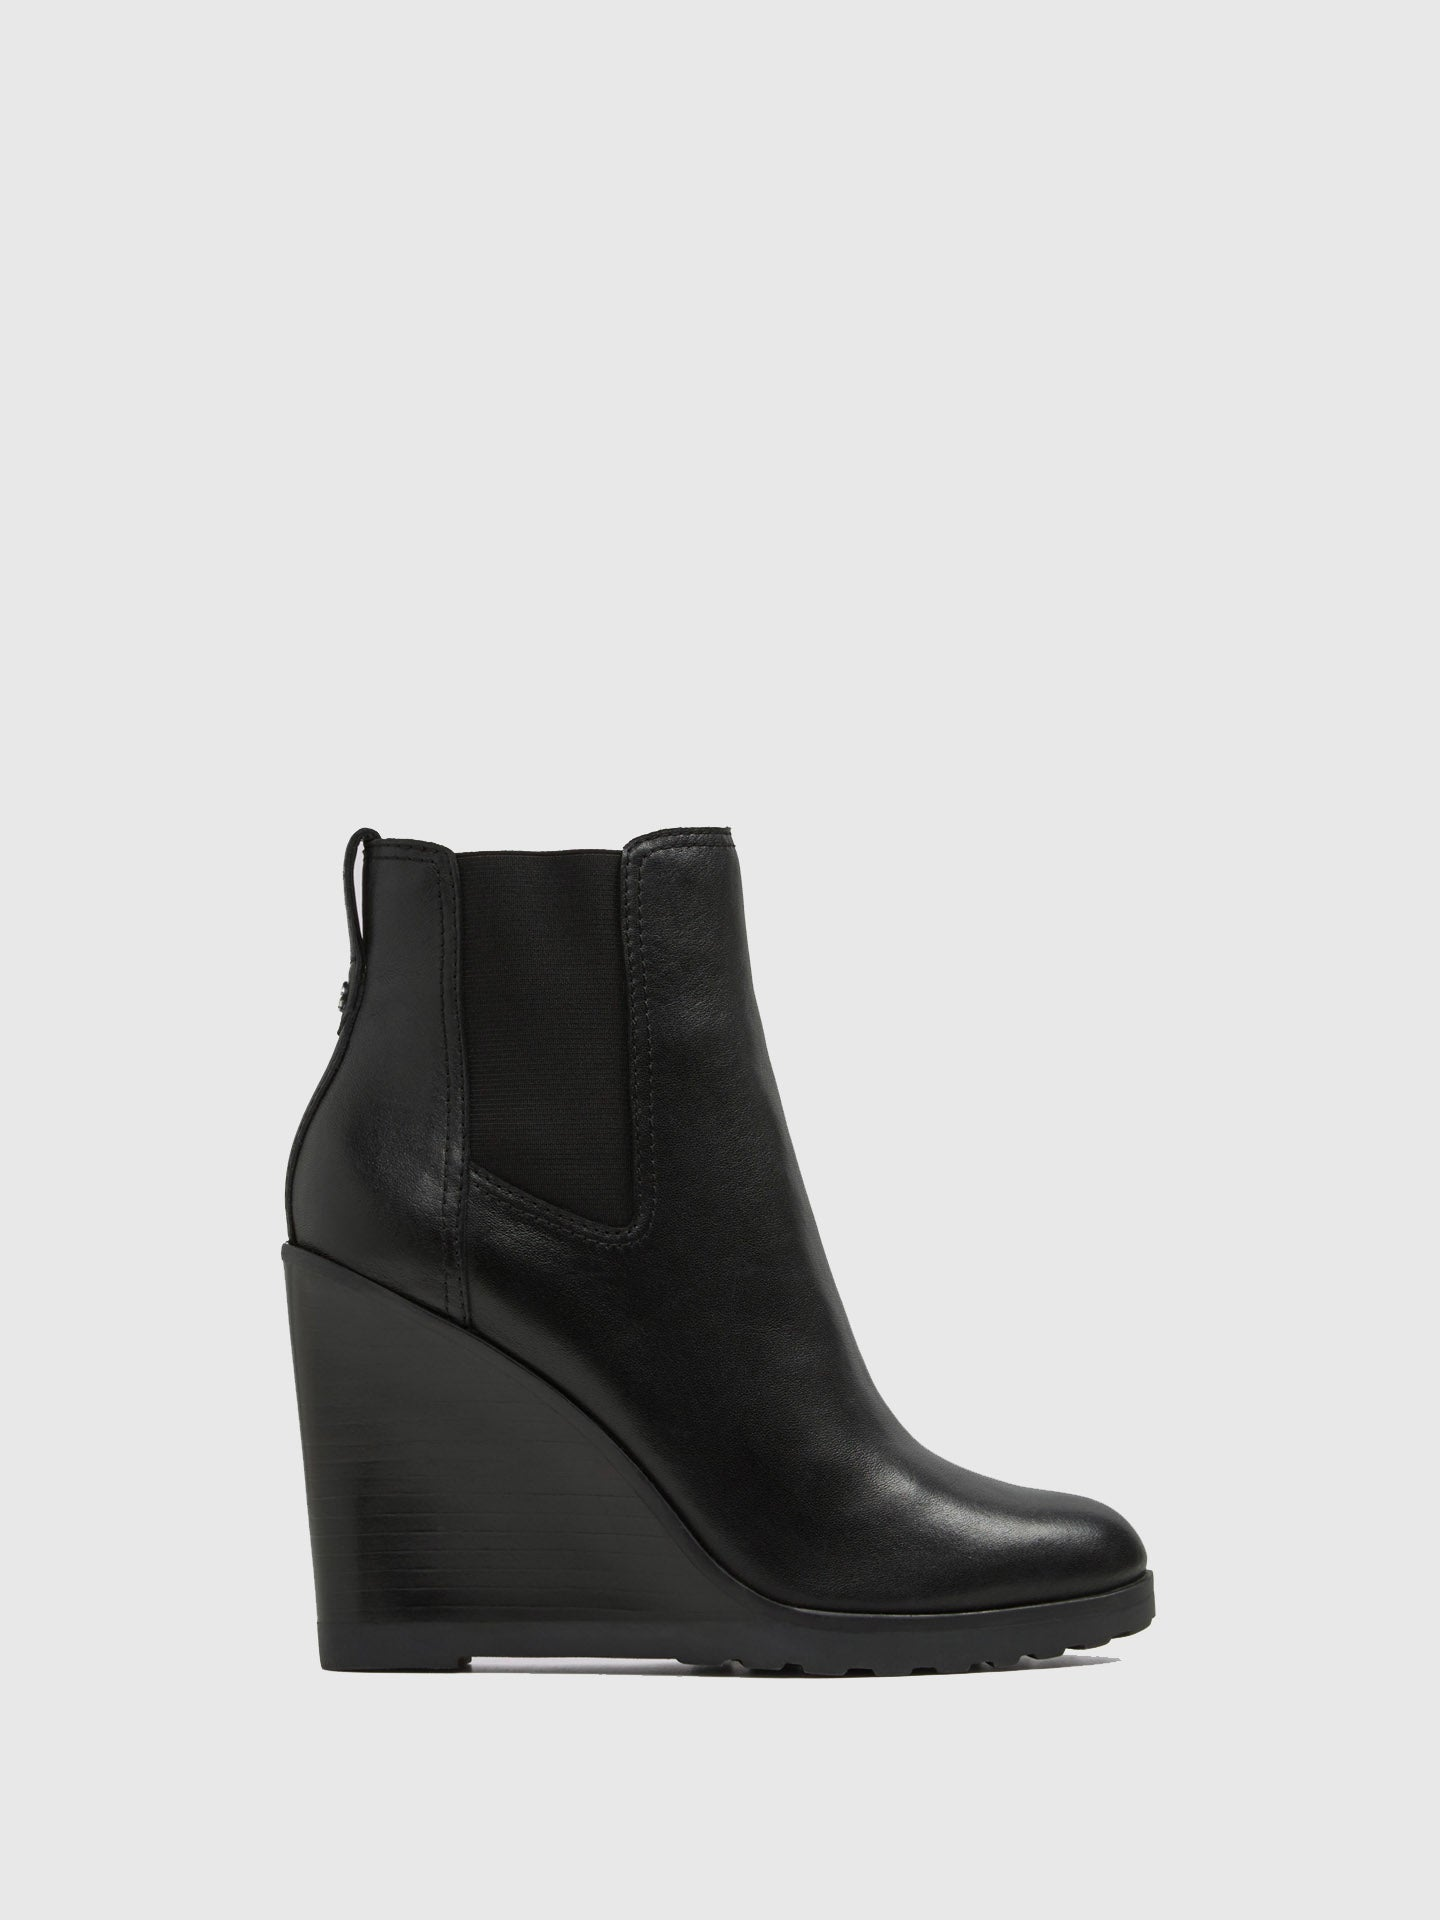 Aldo Black Wedge Ankle Boots